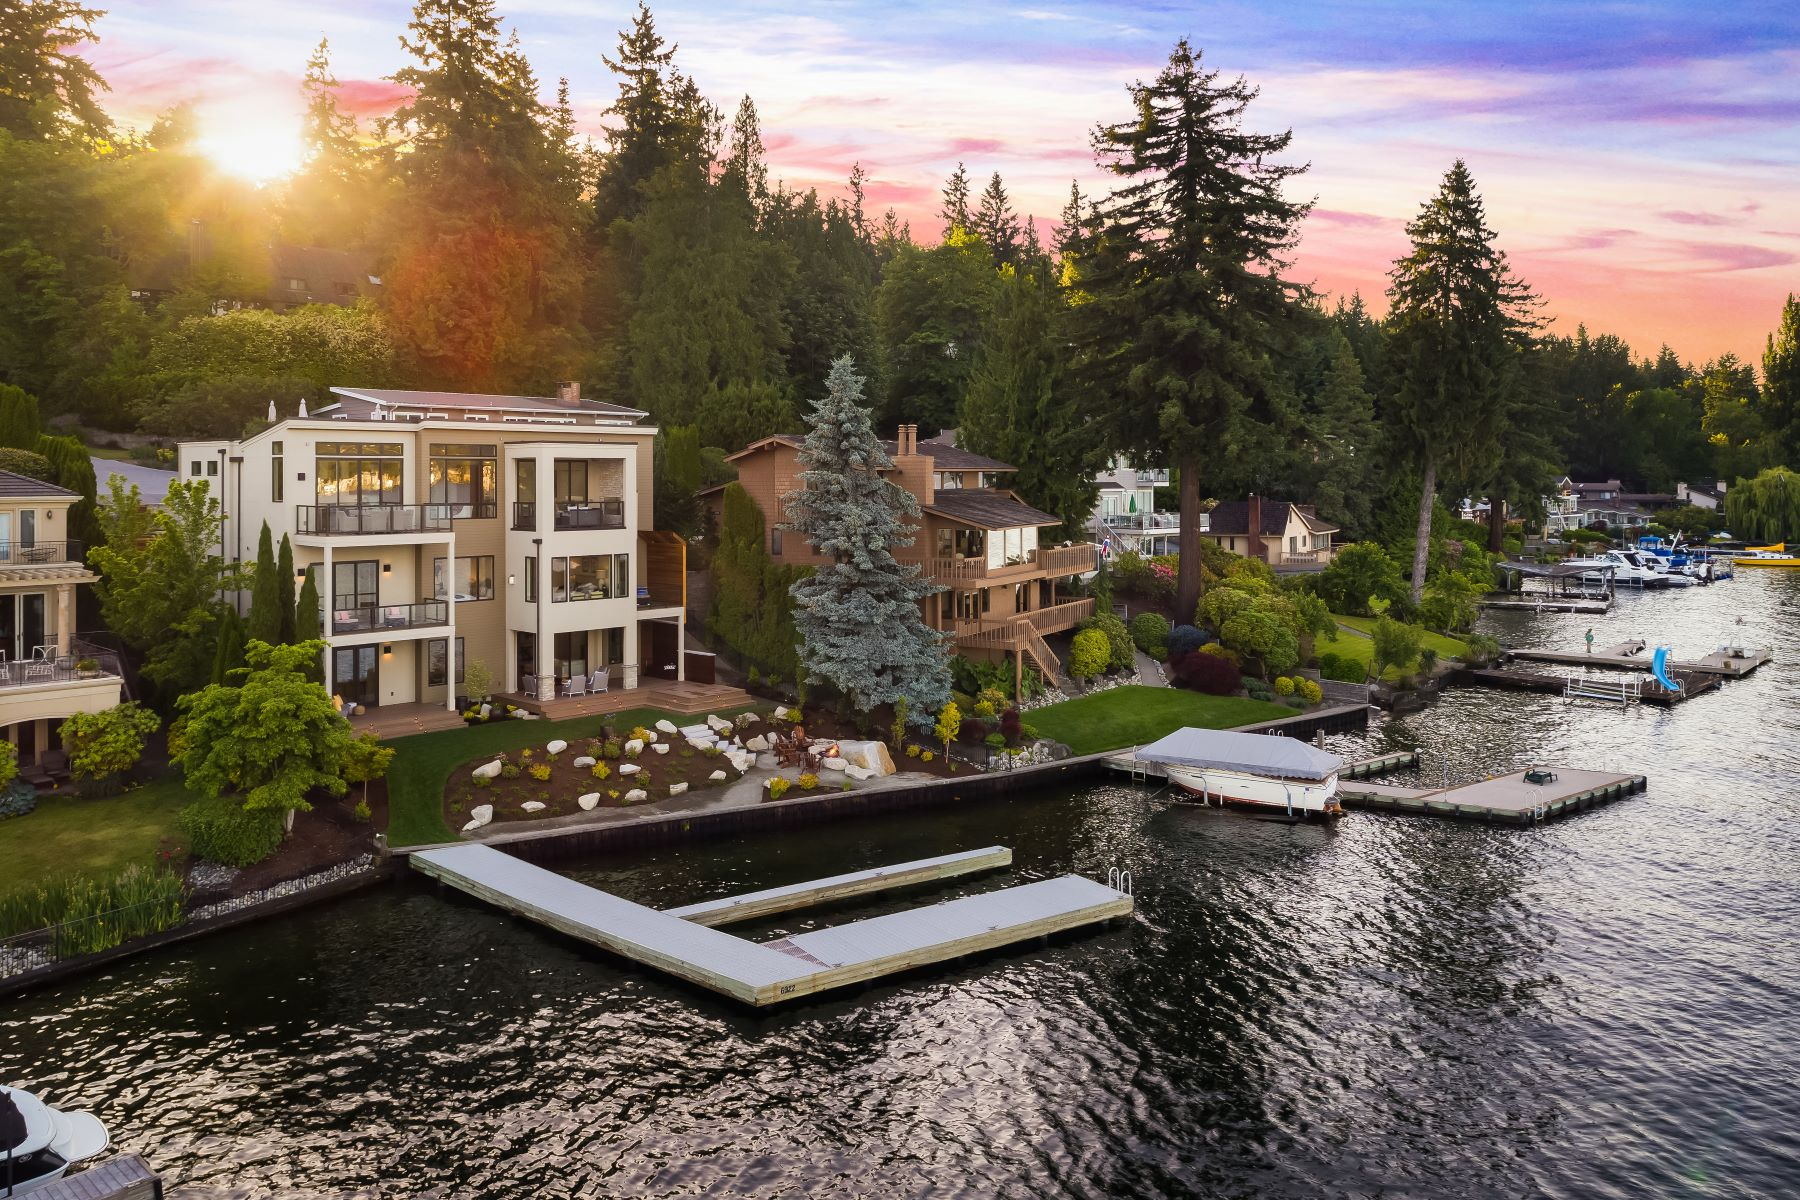 Single Family Homes for Sale at New Construction Northwest Contemporary Waterfront 6922 96th Ave SE Mercer Island, Washington 98040 United States